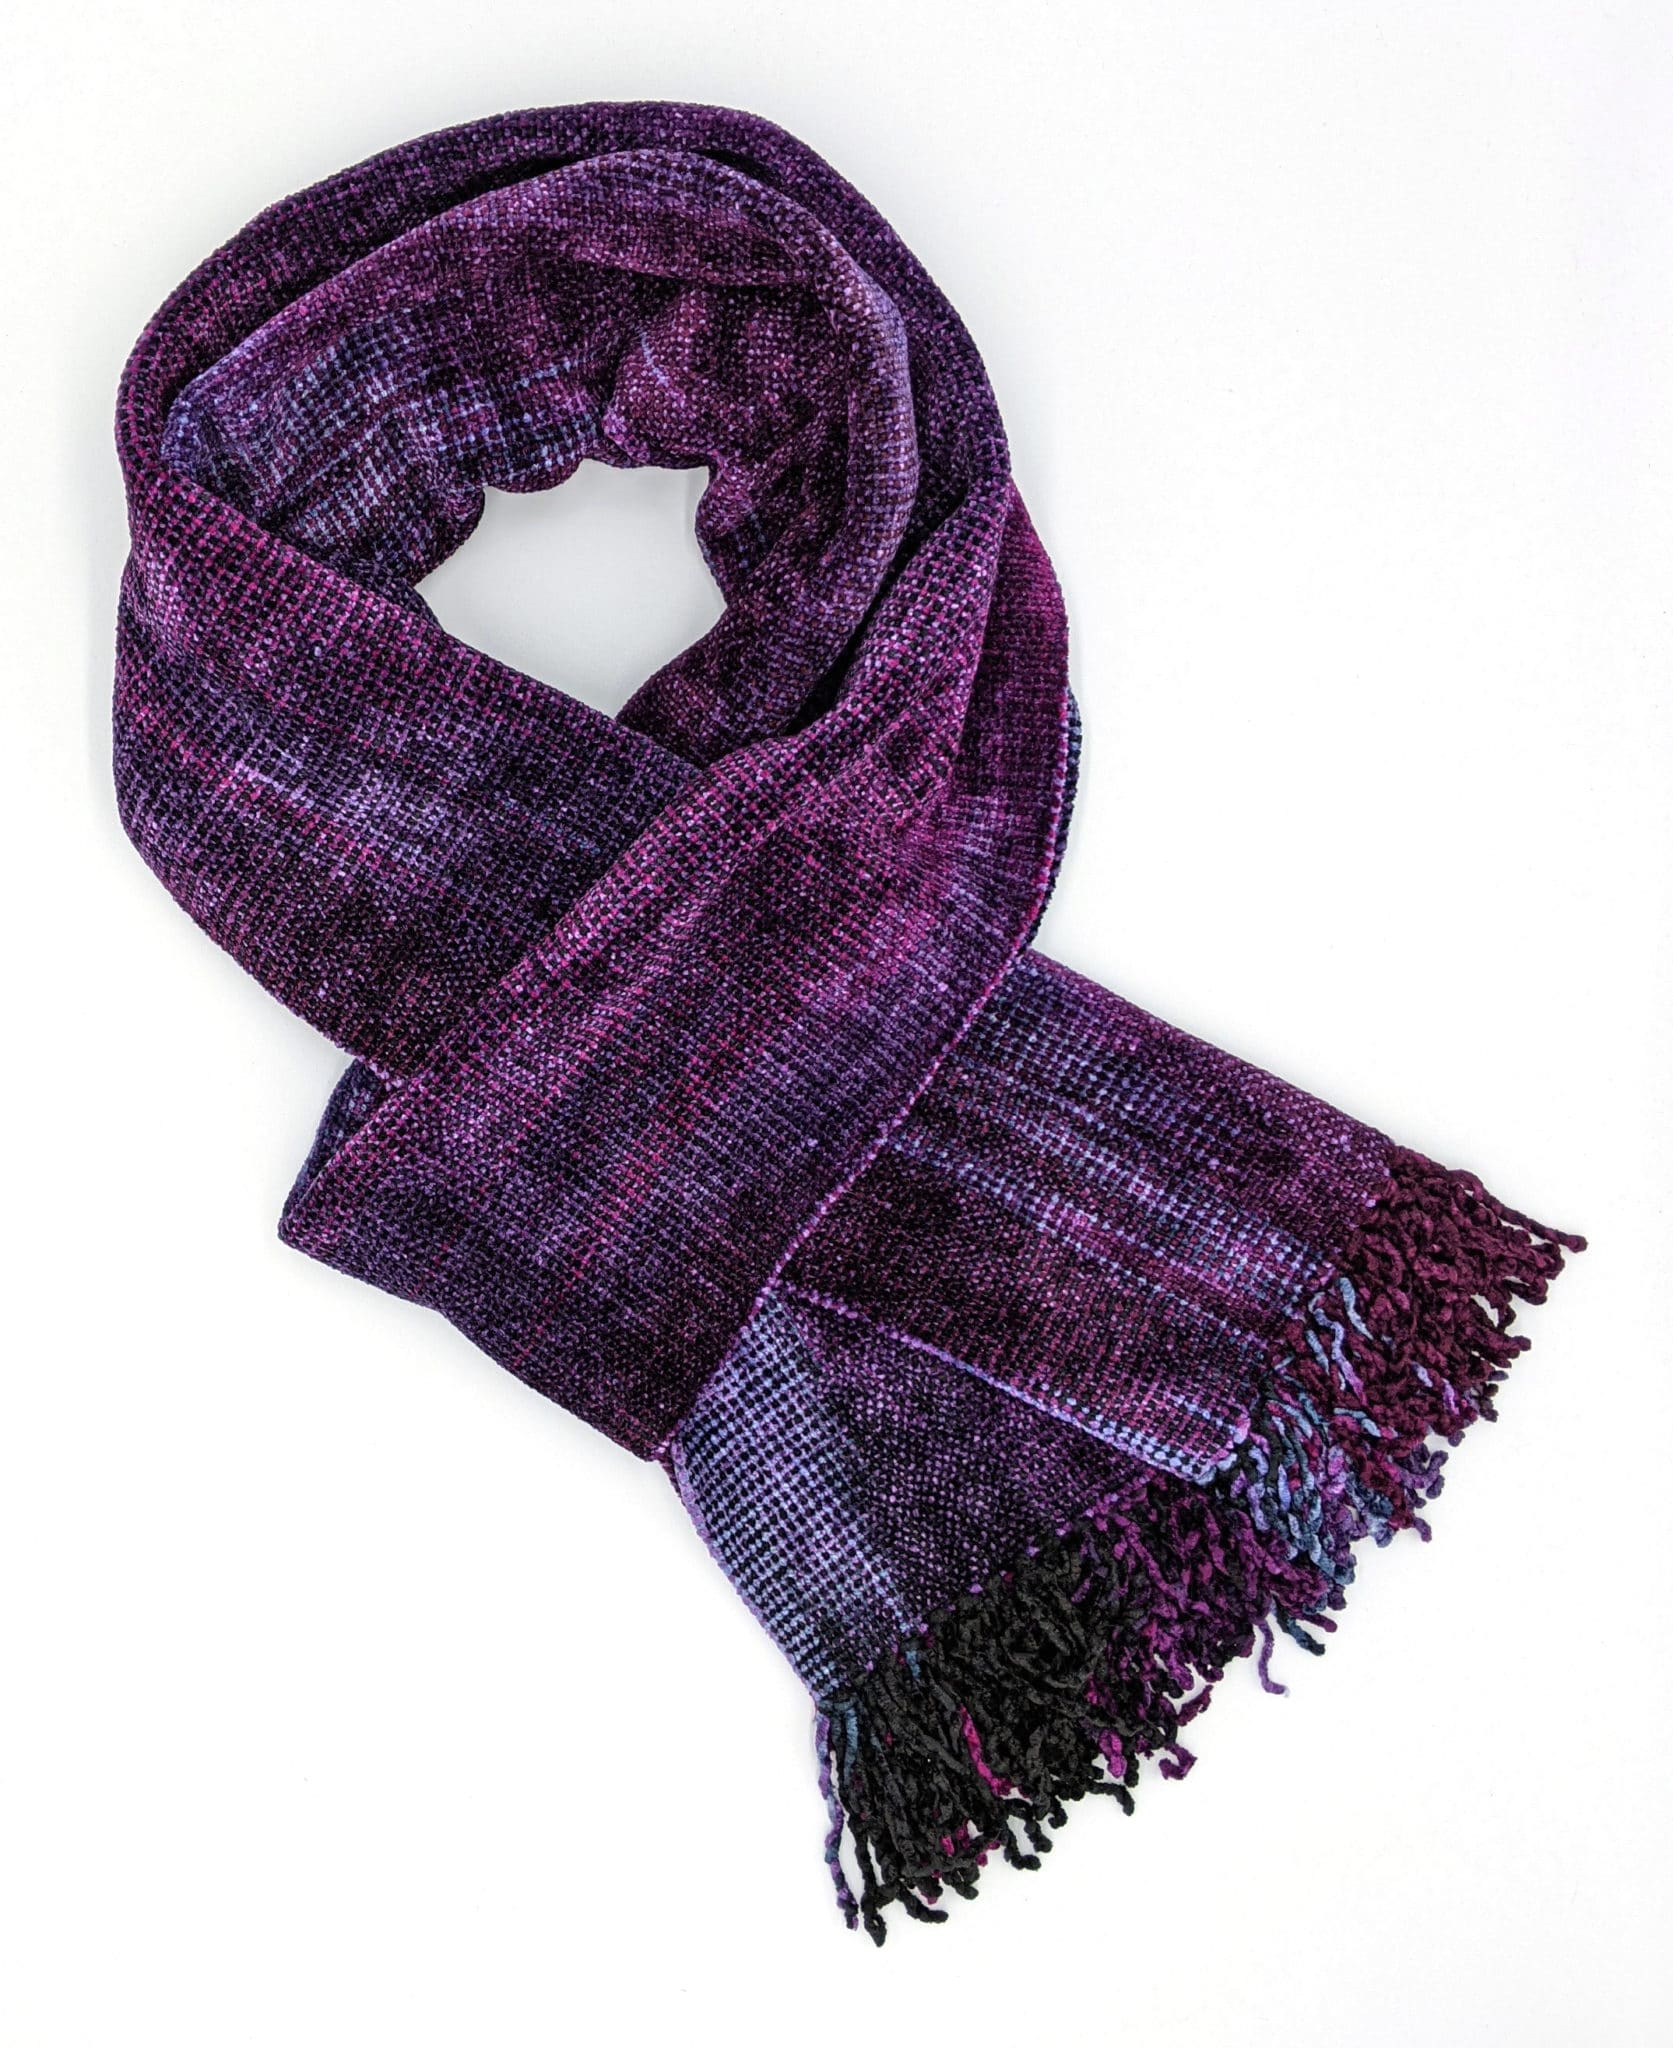 Magenta, Light Violet, and Black Bamboo Chenille Handwoven Scarf 8 x 68